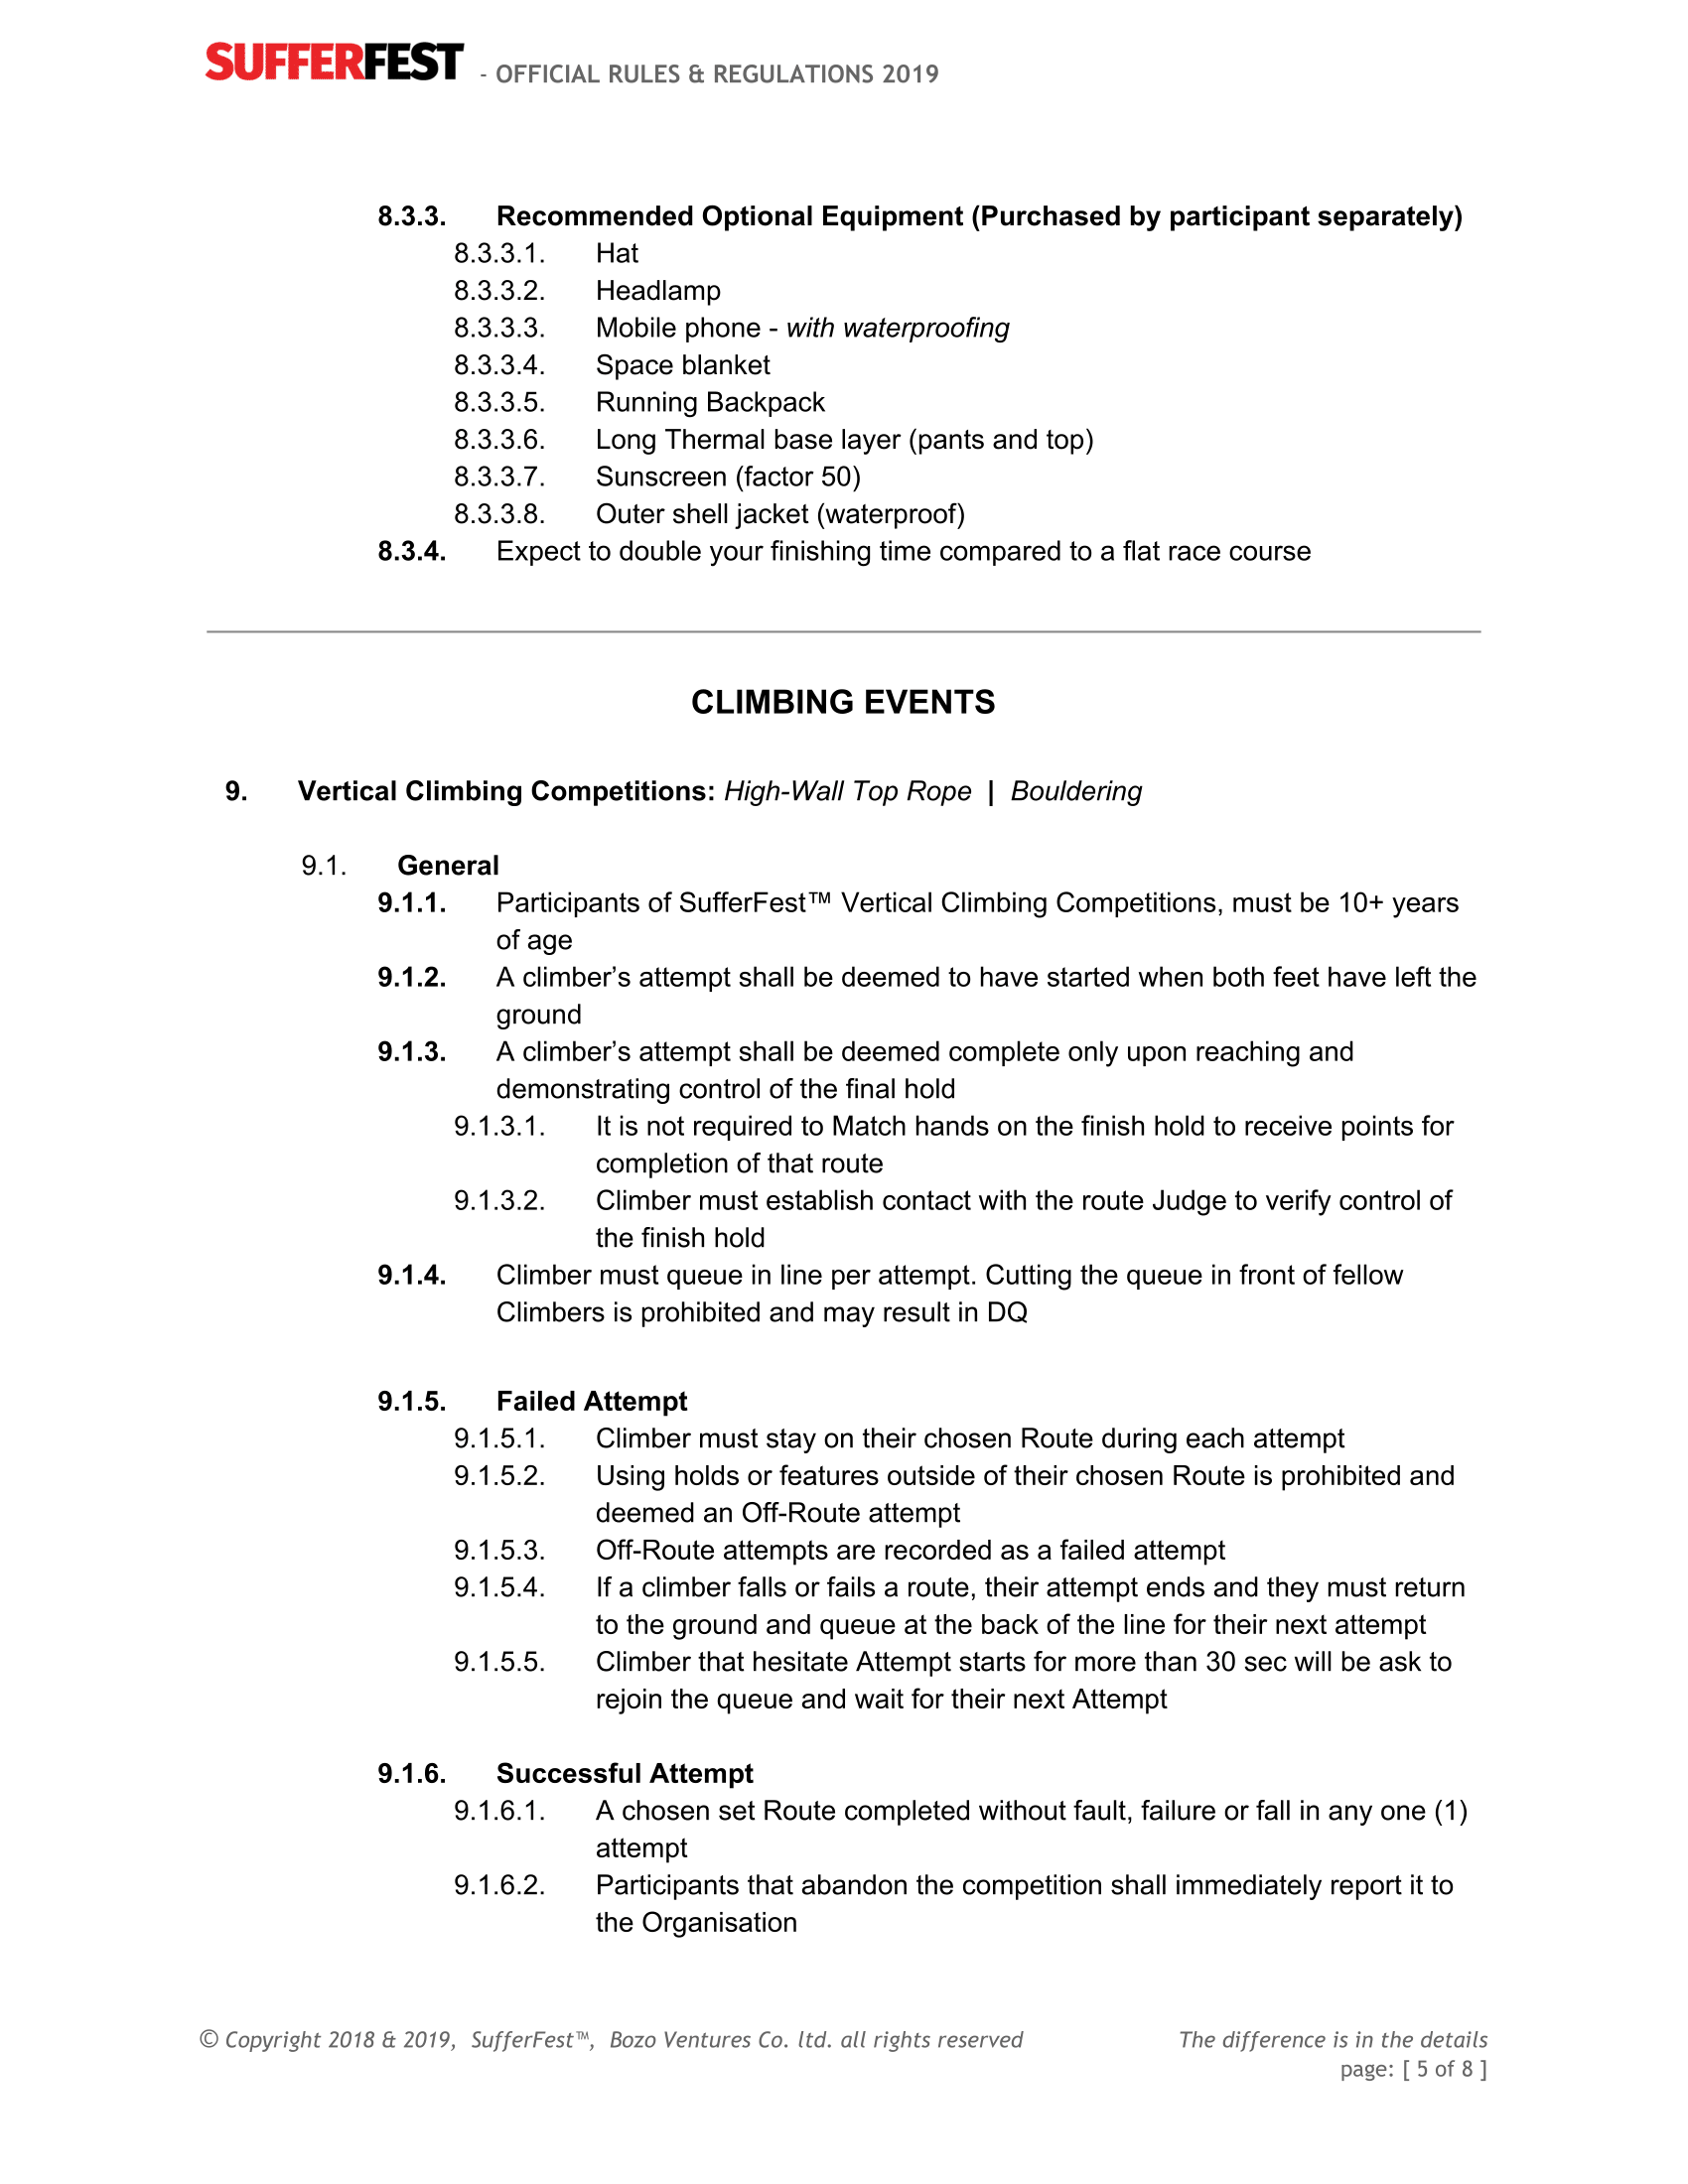 [ENG] SufferFest™ - Official Rules and Regulations - 20181022-6.png